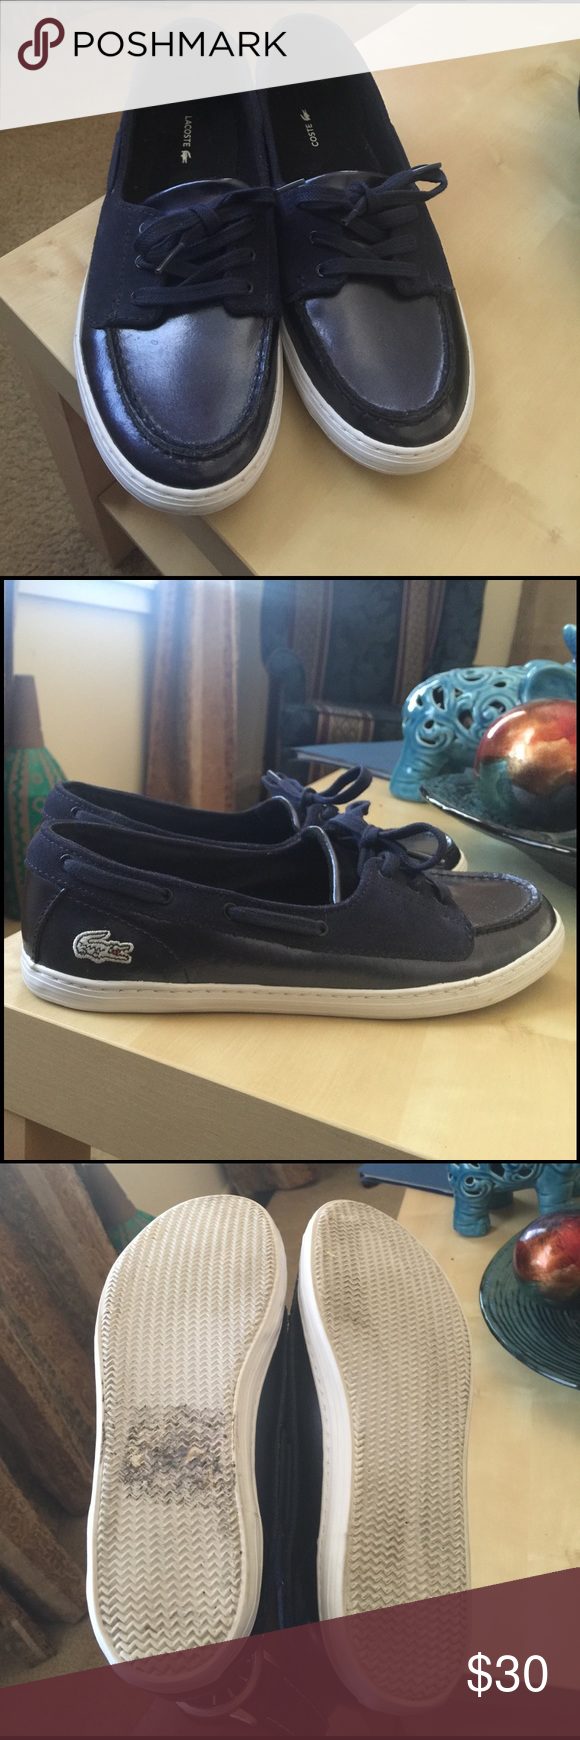 46798d09385 Navy blue with white Lacoste symbol on side of shoes. Shoe has suede upper  with final stitching, with boat style lacing. Shoes do not have original ...